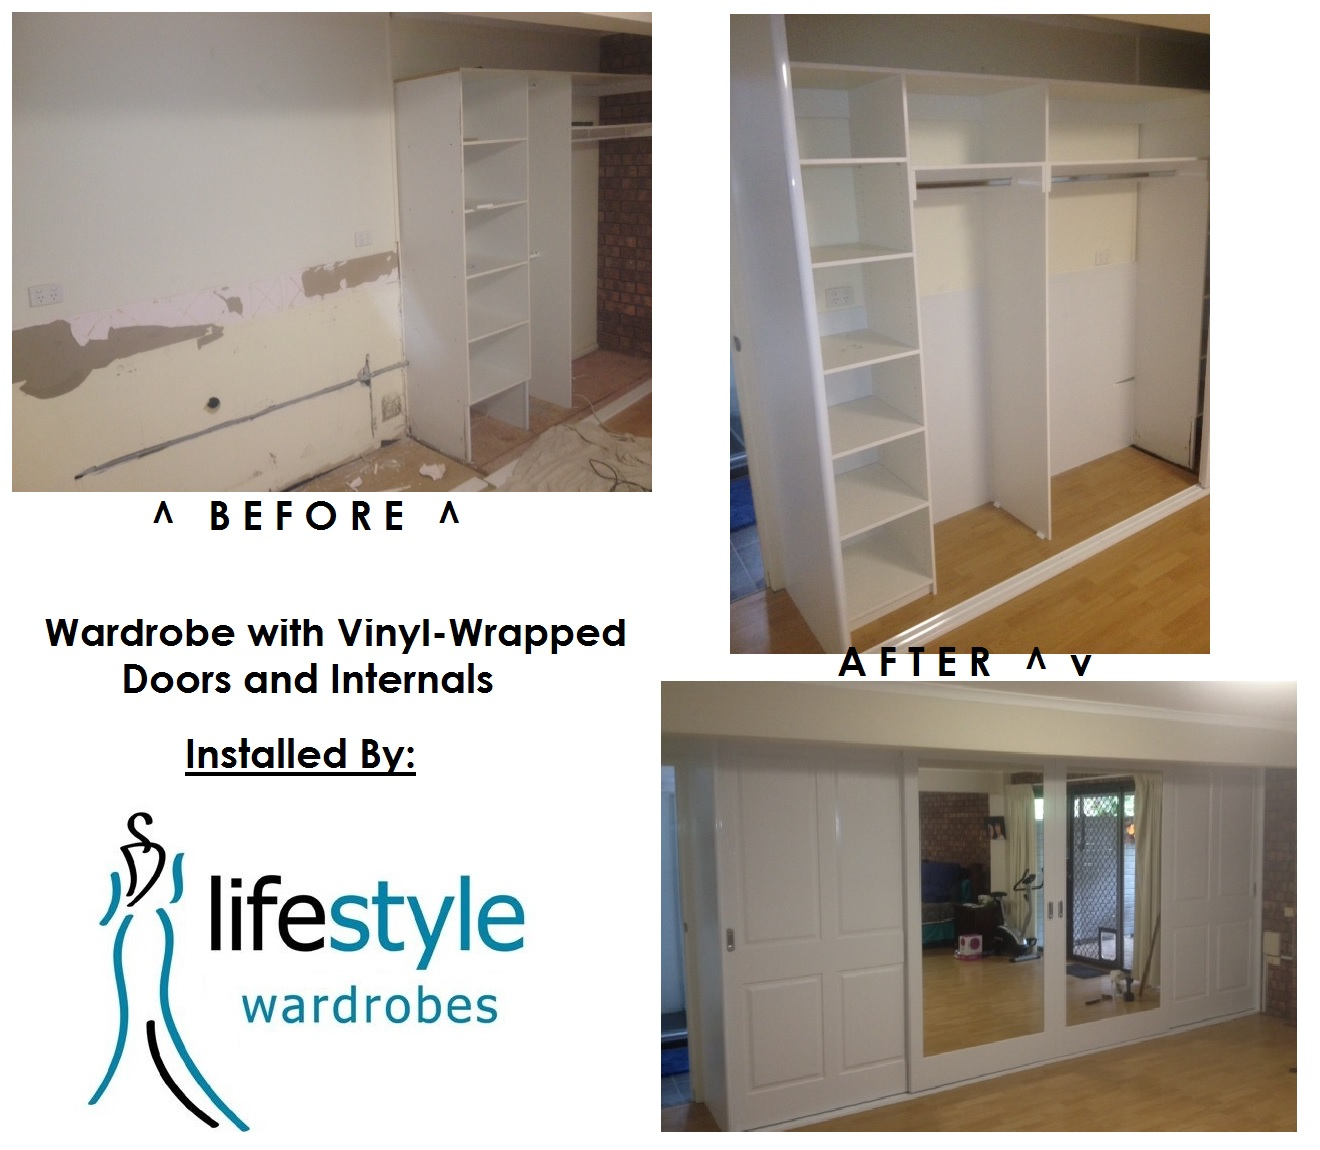 new wardrobe installation